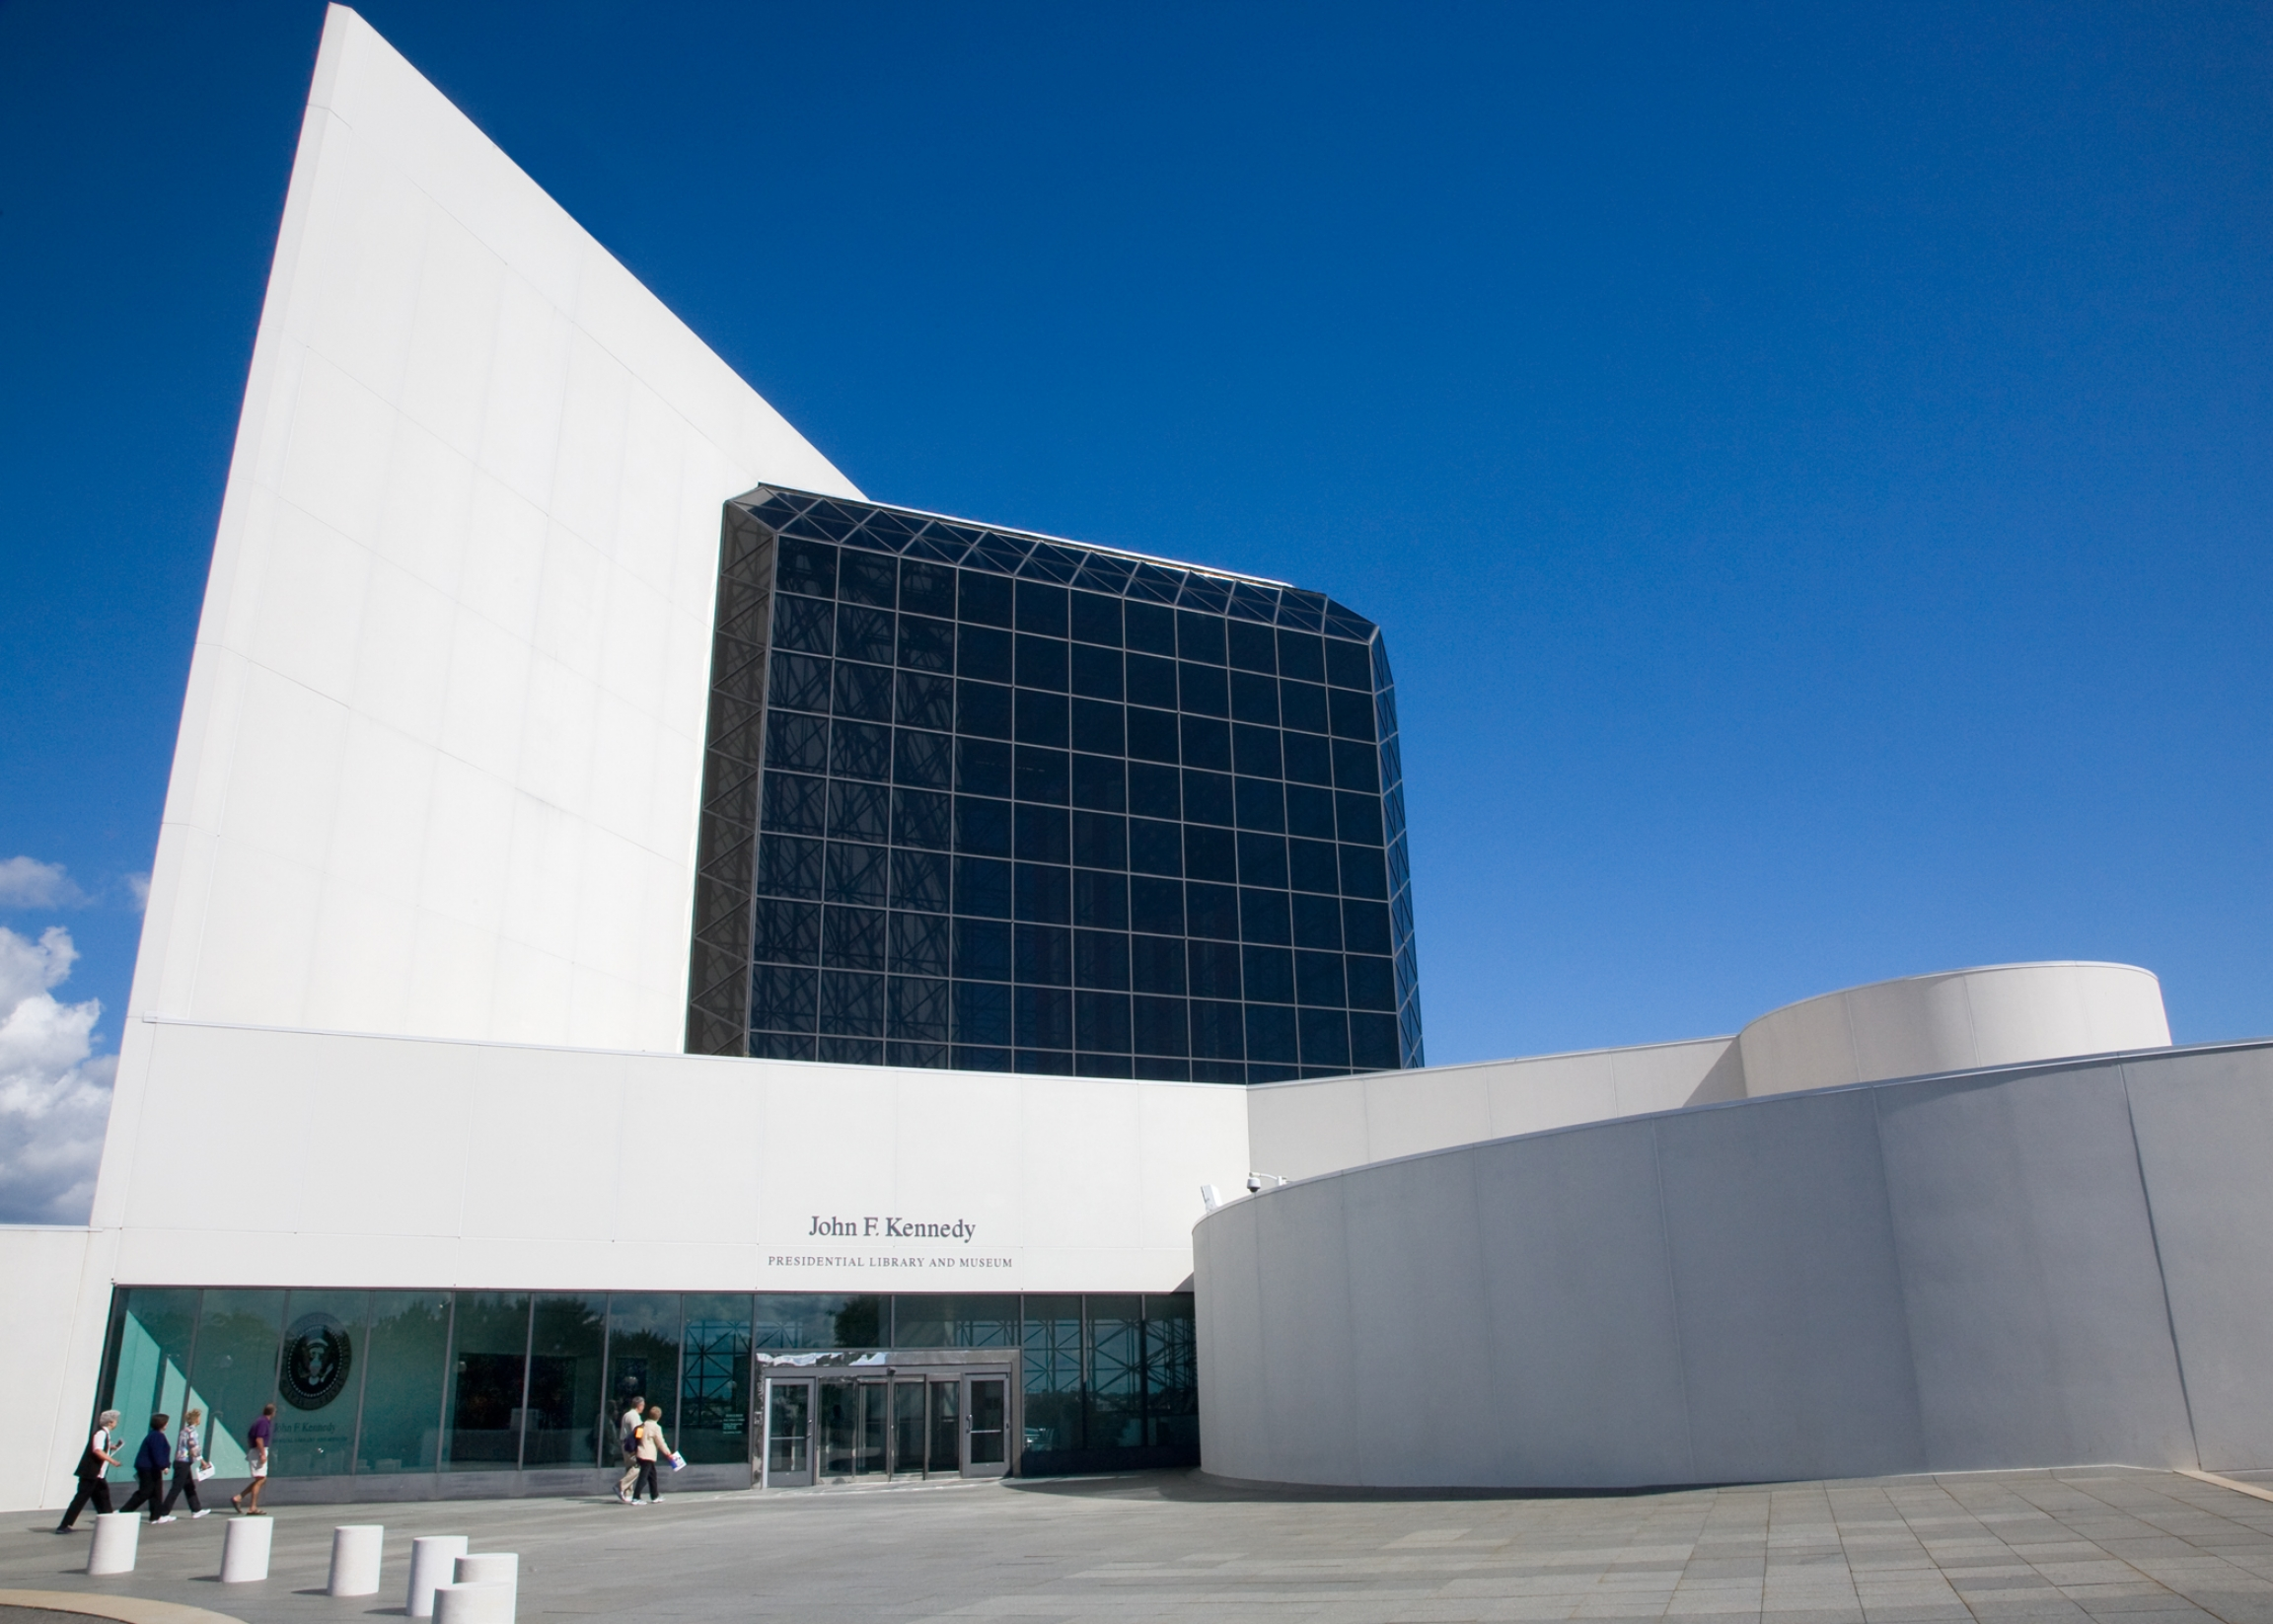 The glass and and concrete John F. Kennedy Presidential Library and Museum on a sunny day.